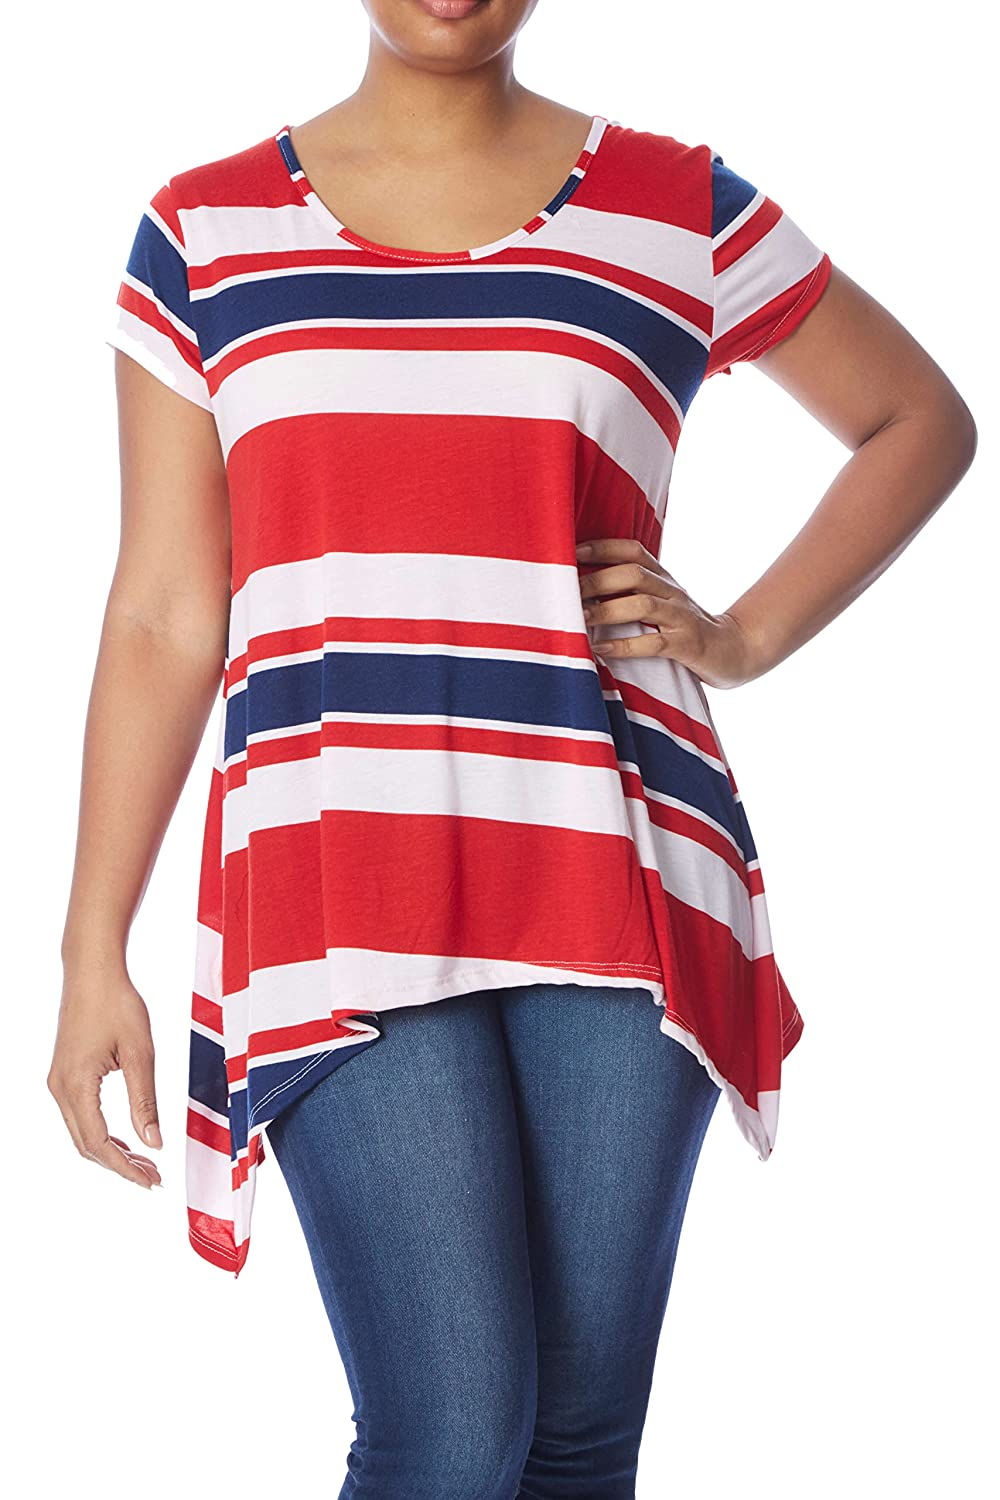 More Plus Size Patriotic Tops To Show Your Love For The Usa